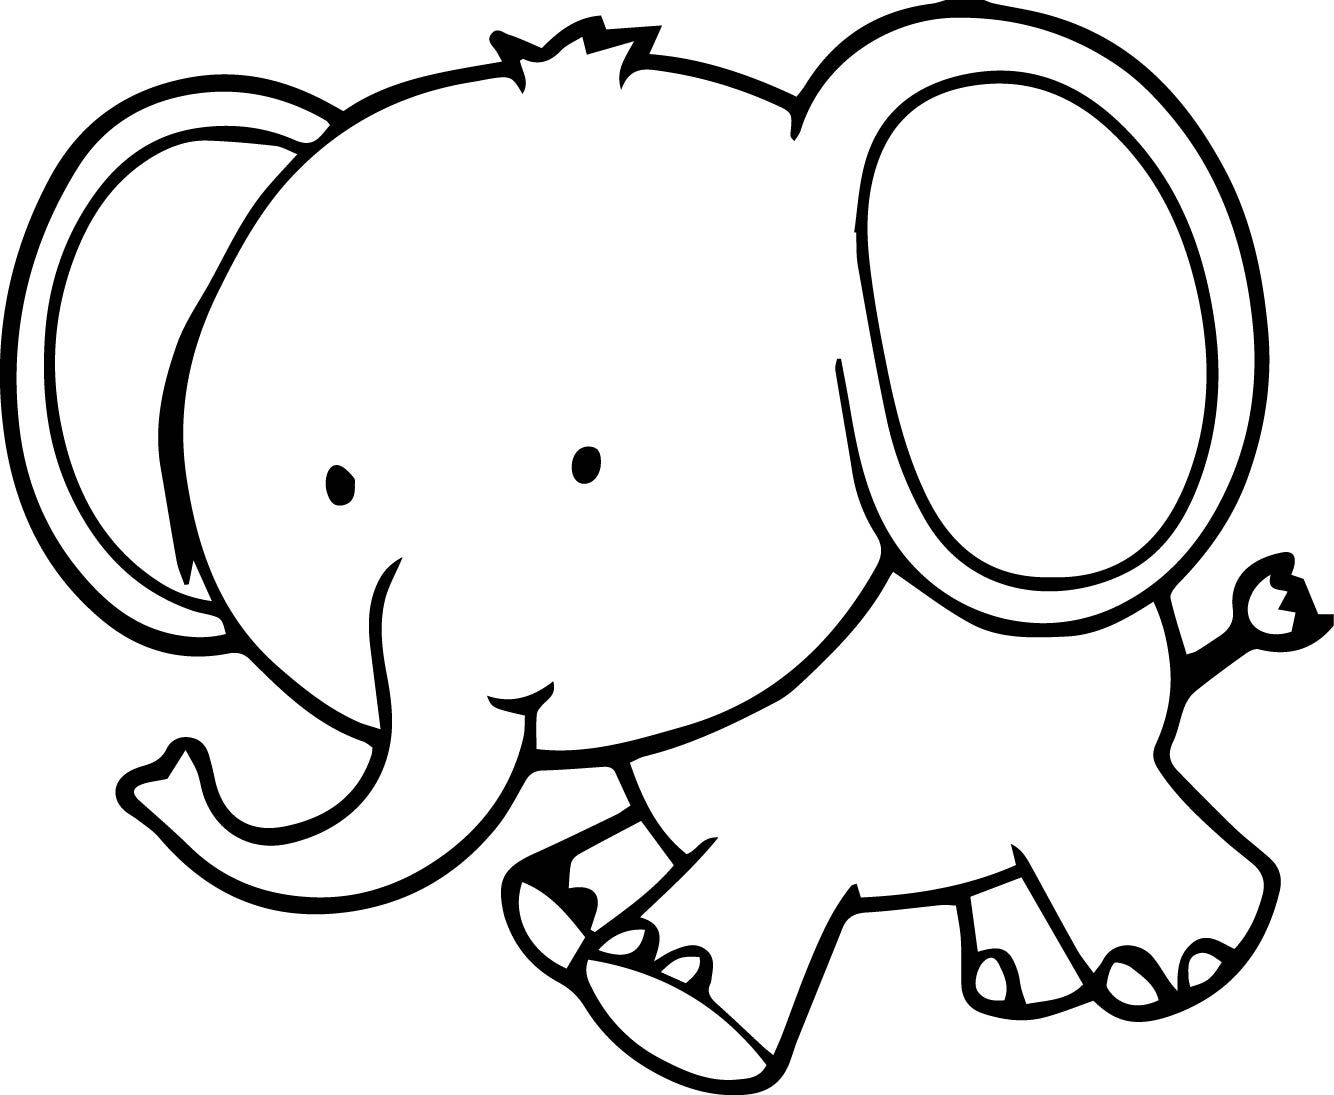 Cool Very Cute Small Elephant Coloring Page Elephant Coloring Page Animal Coloring Pages Elephant Colouring Pictures